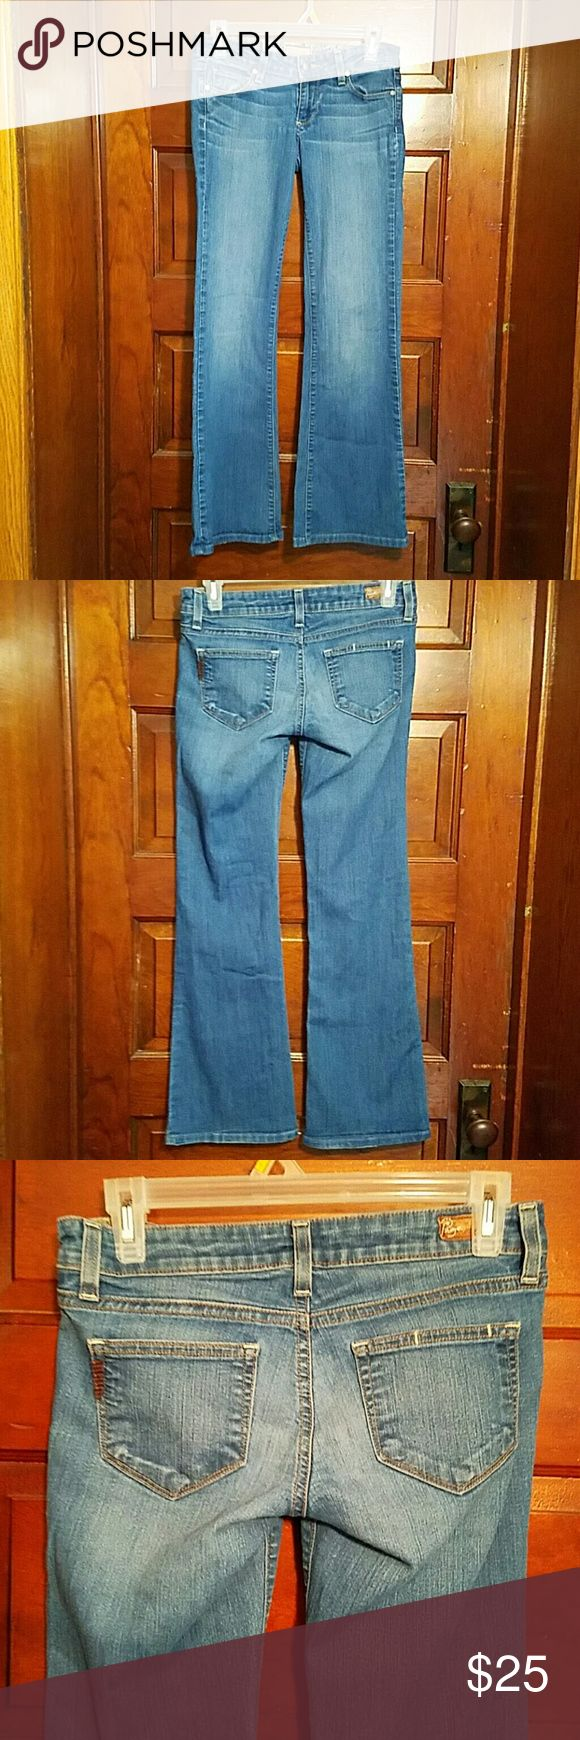 """Paige Canyon Flare Denim Factory Fade Jeans 26 Gently worn women's sexy Flared leg jeans by Paige. Factory whiskering and fade.  Minimal wear to leg openings.  So soft and comfy.  No rips stains or repairs.  From a smoke free home. Five pocket styling.   Measures 27"""" waist,  32"""" hips, 6.5"""" rise,  30"""" inseam. Paige Jeans Jeans Flare & Wide Leg"""